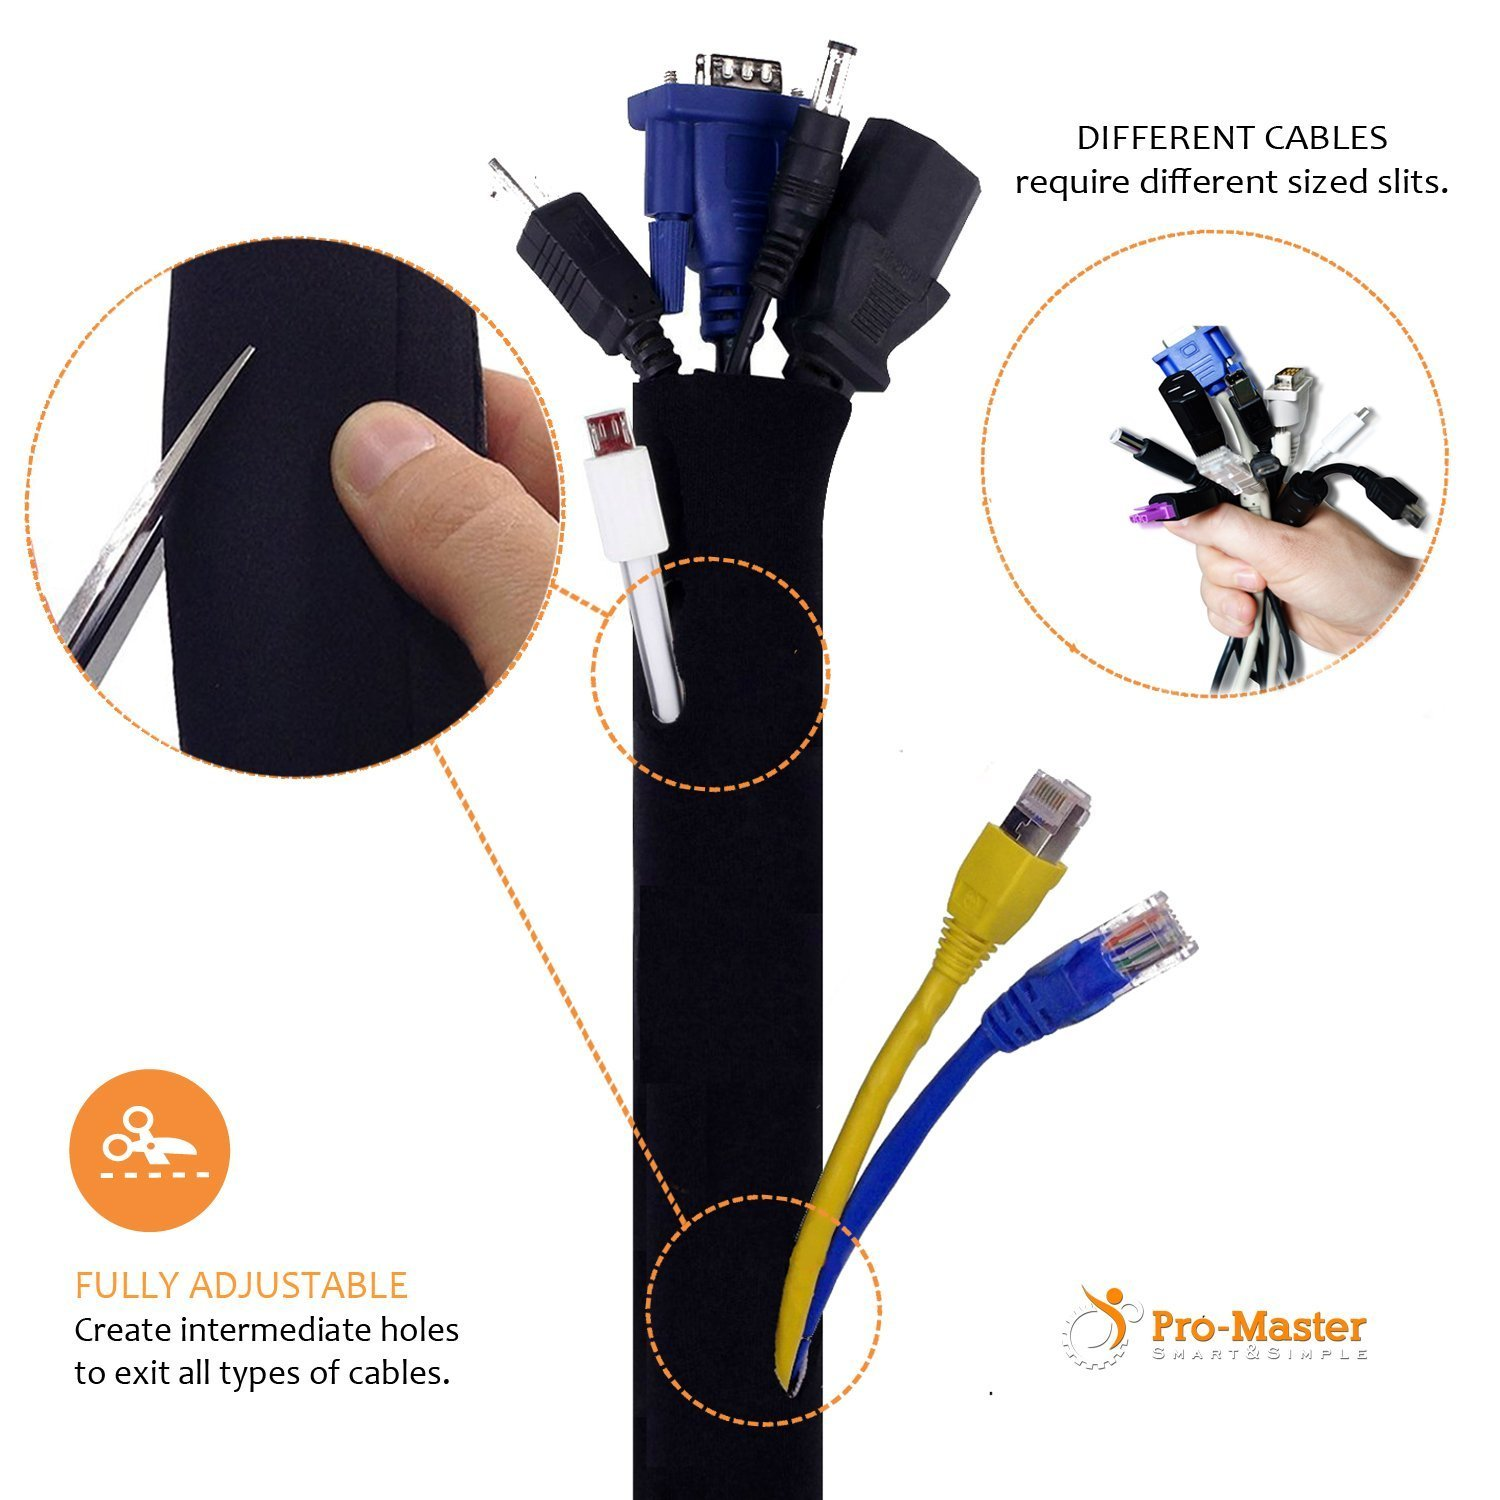 New Design Premium 120 Cable Management Sleeve With Free Zip Ties Wiring Home Theater Best Cords Organizer Wire Hider Protector For Desk Tv Pc Diy Adjustable